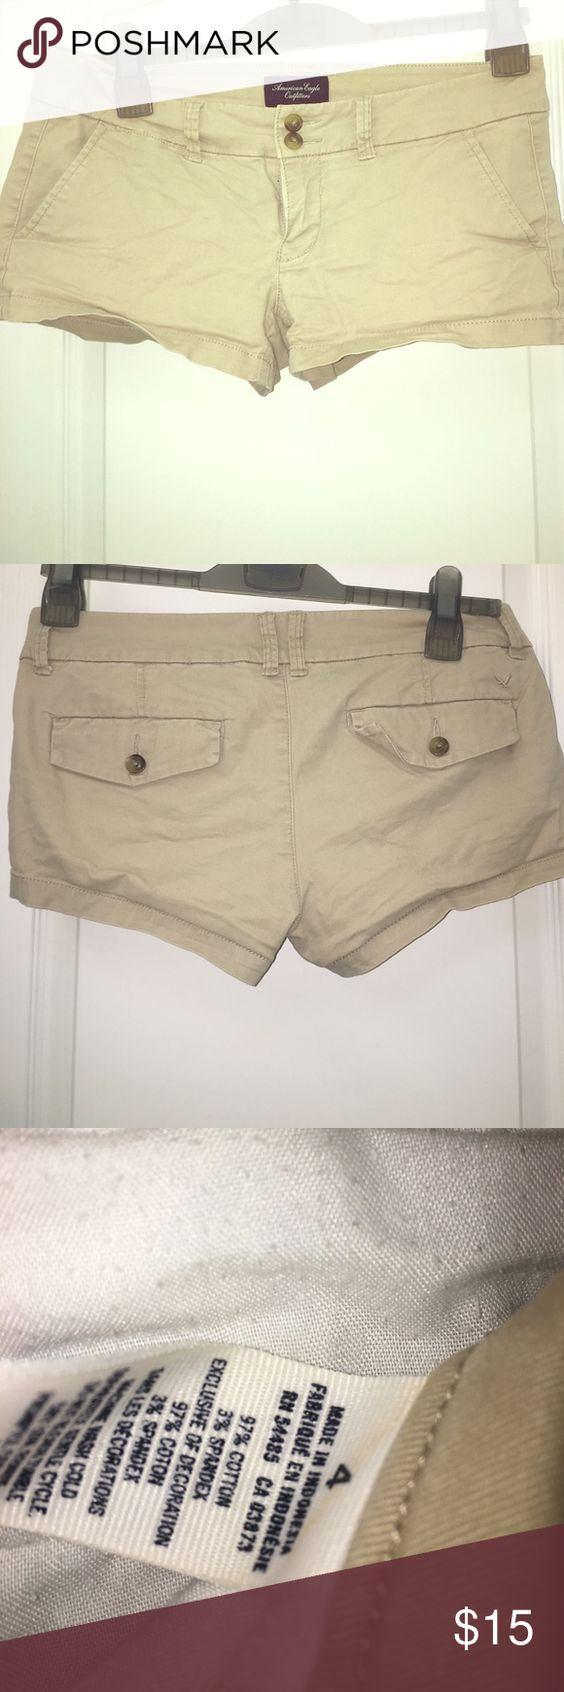 American eagle shorts Super short stretch khaki shorts from American eagle! American Eagle Outfitters Shorts